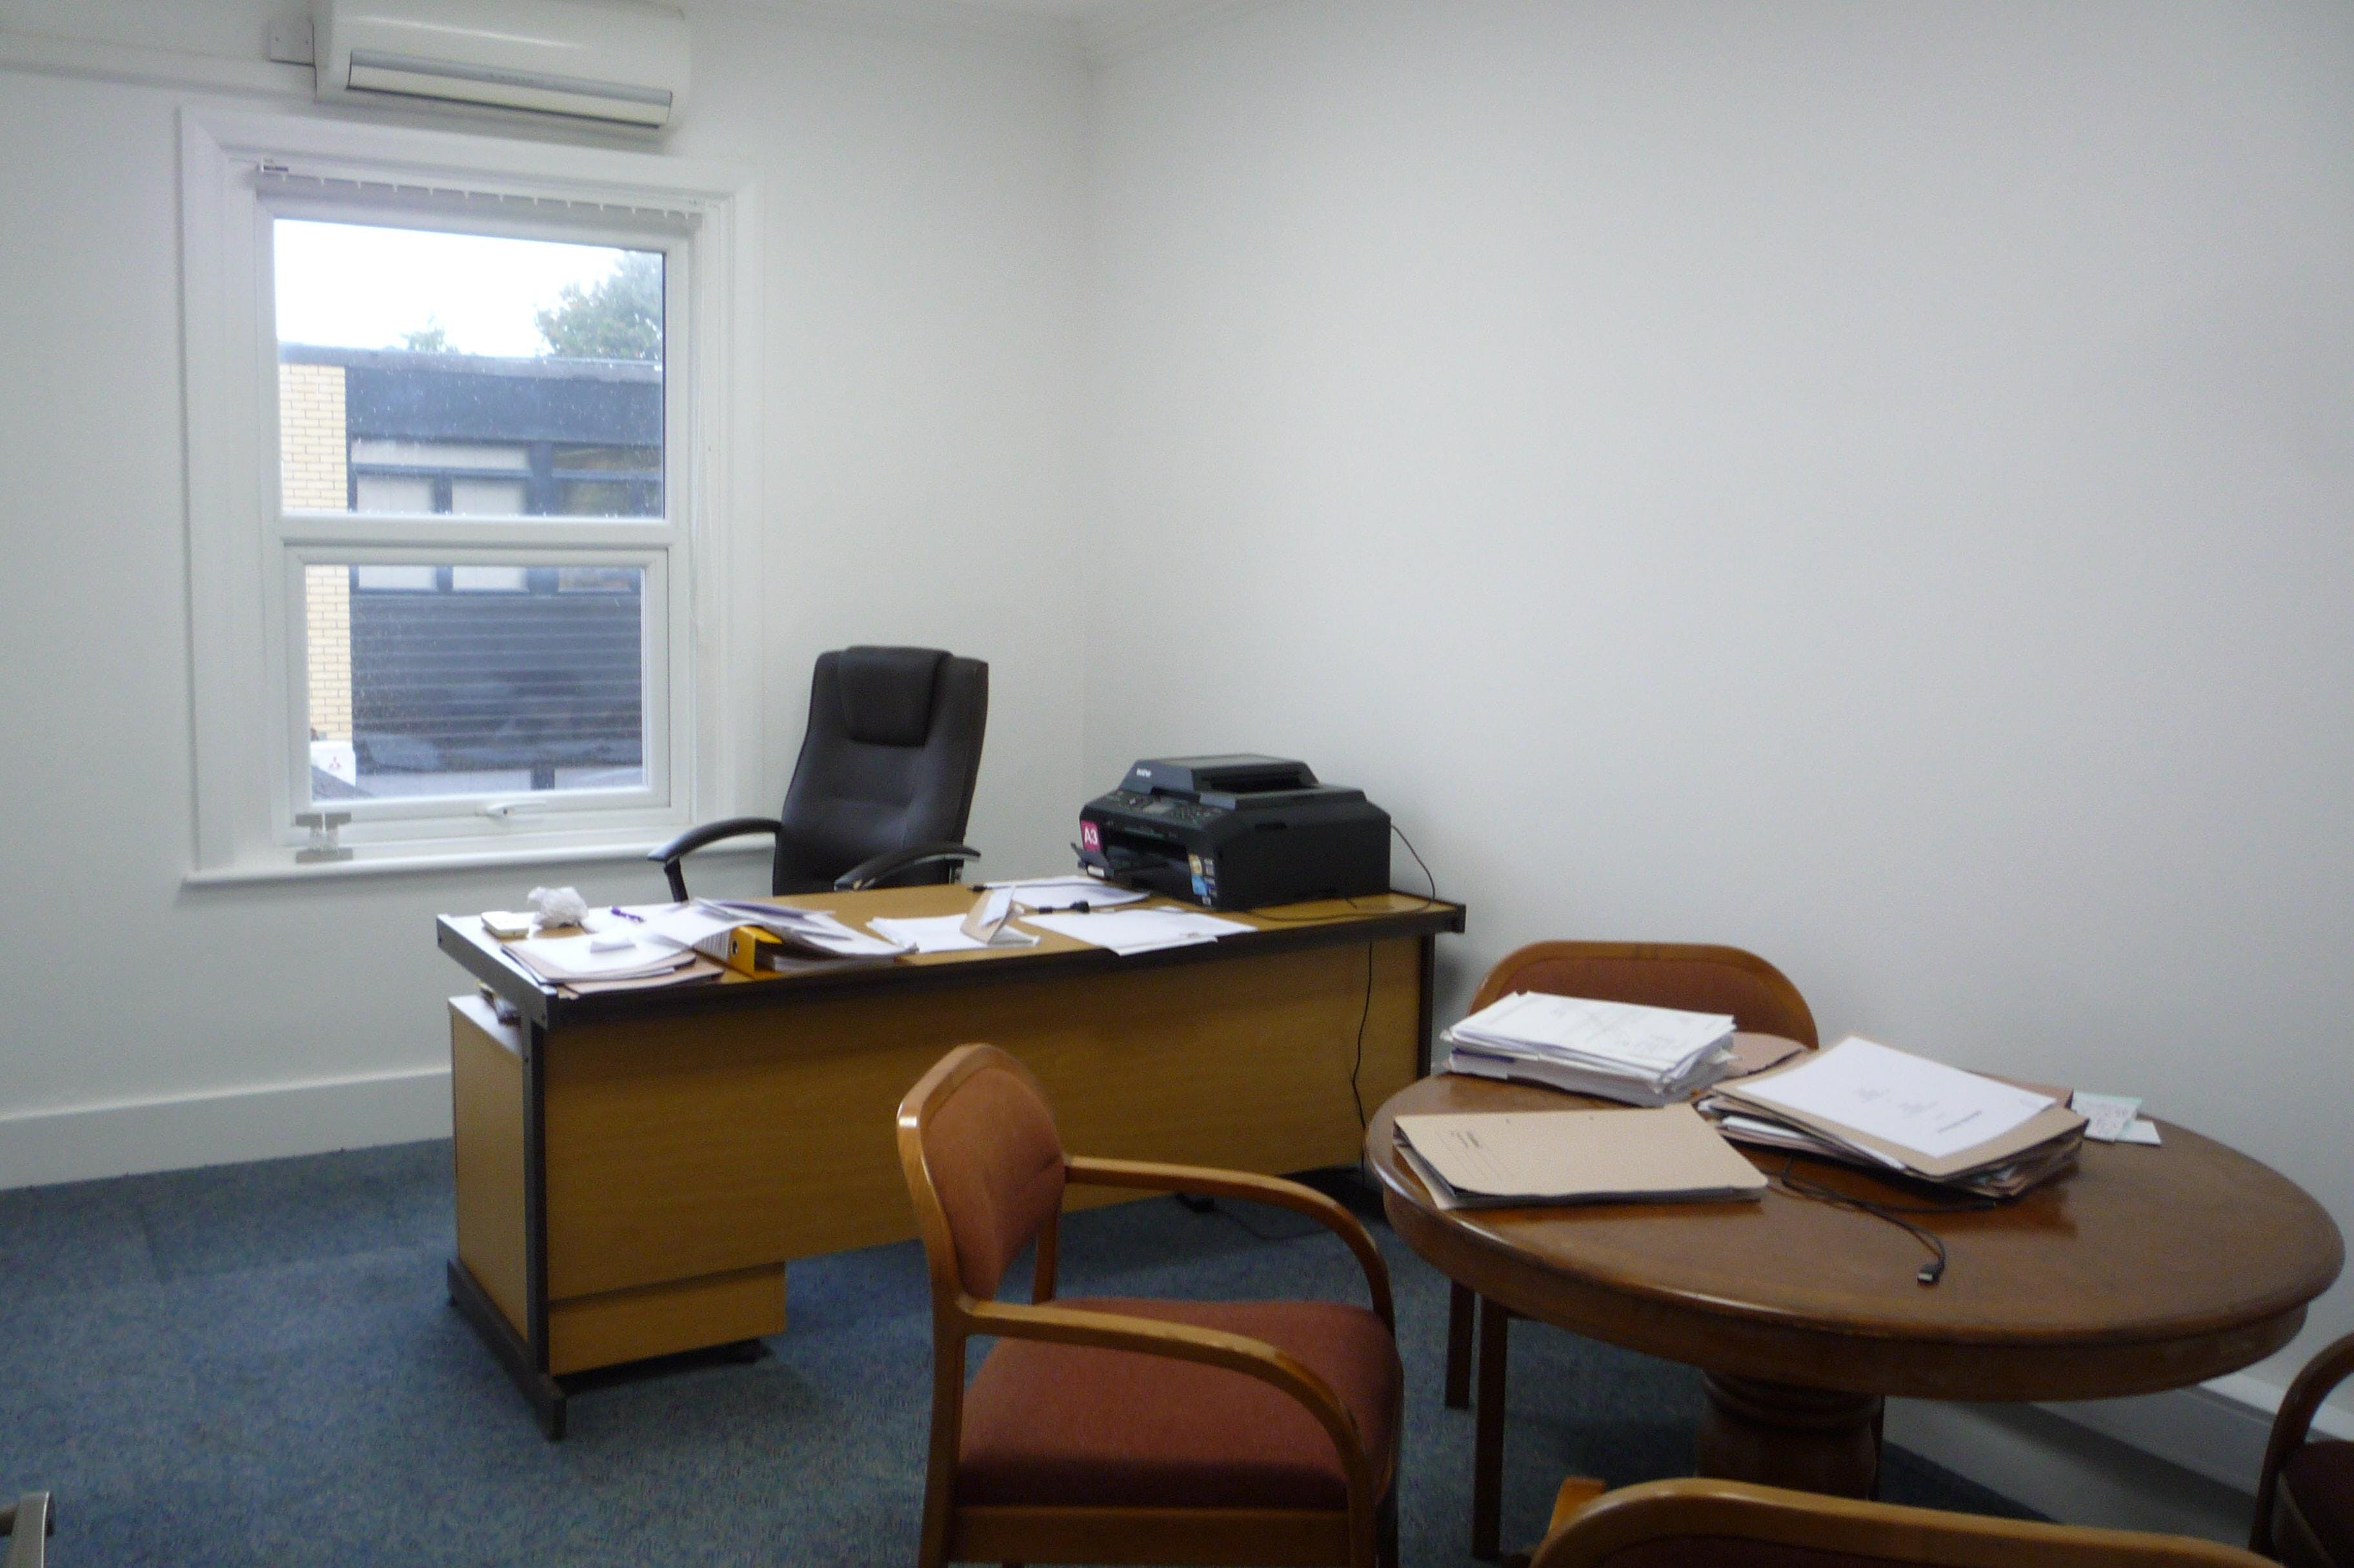 30 Reading Road South, Fleet, Offices To Let - P1040346.JPG